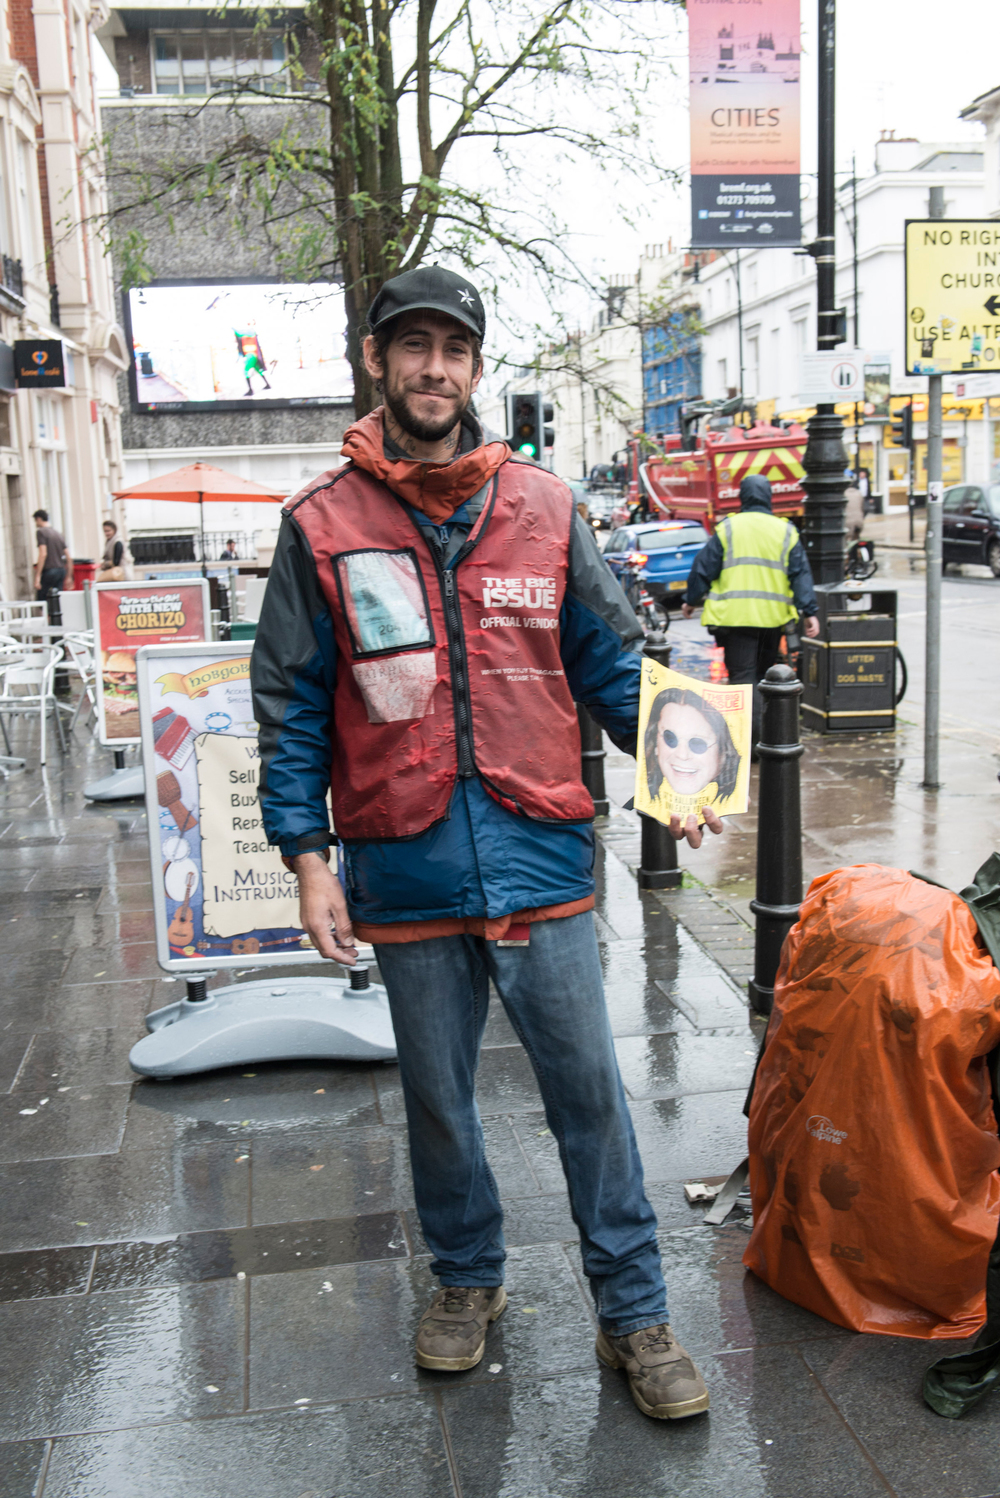 Big Issue Seller Magazine Portrait